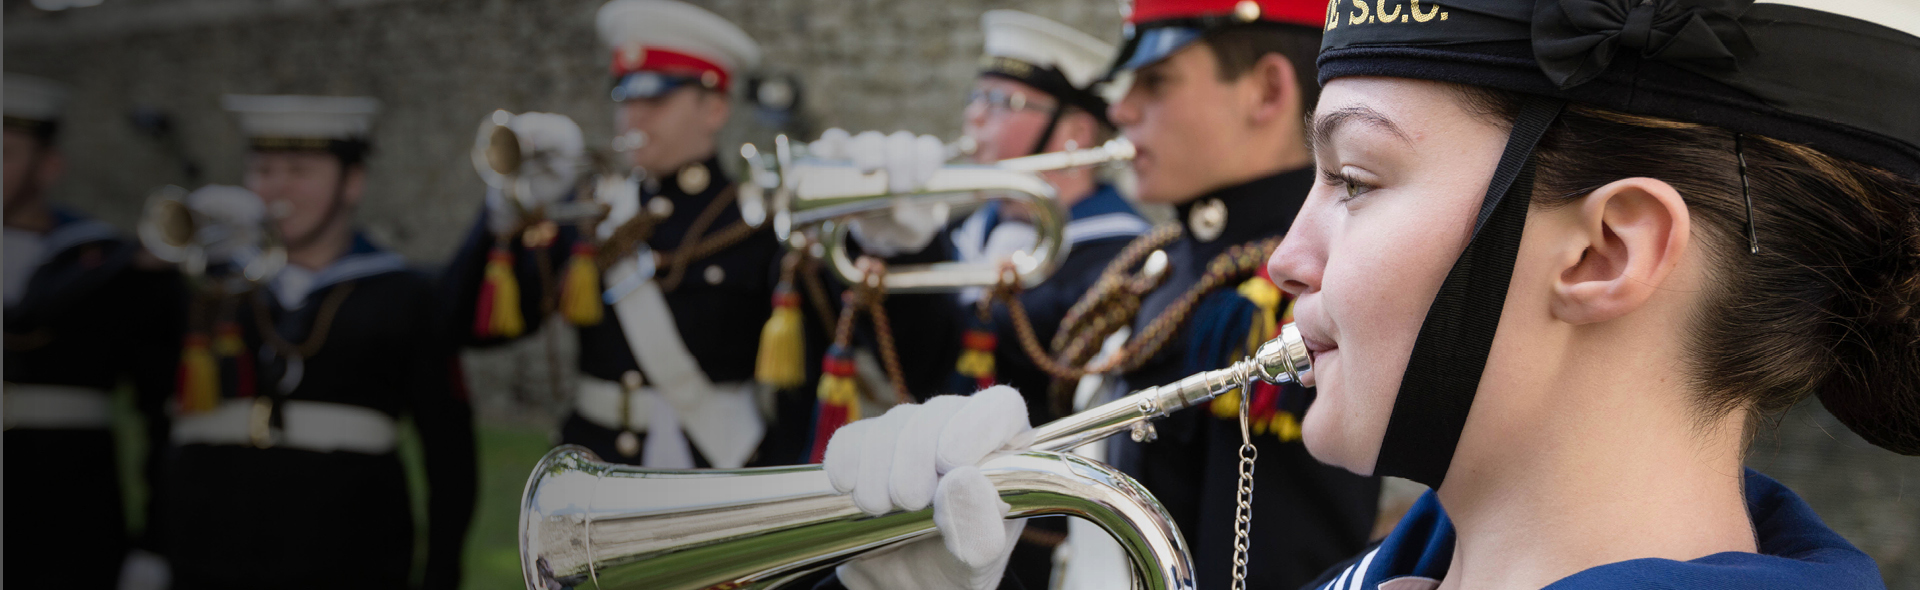 Letchworth and Hitchin